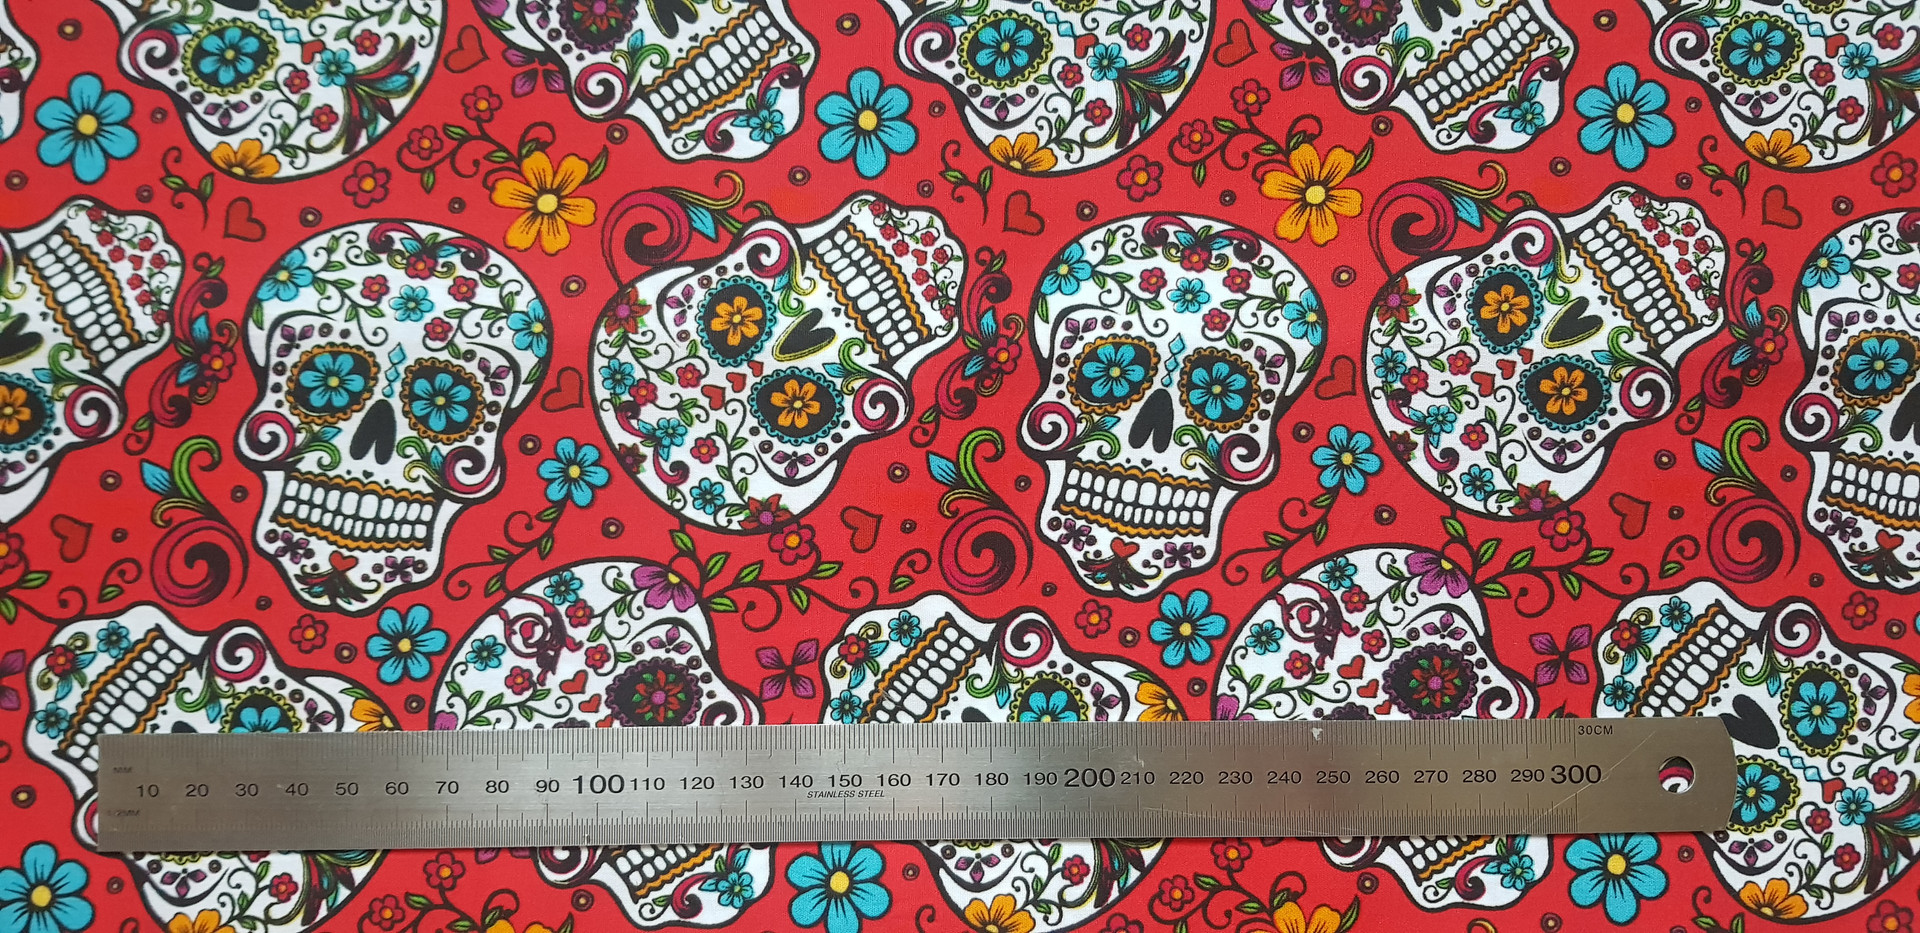 100. Day of The Dead